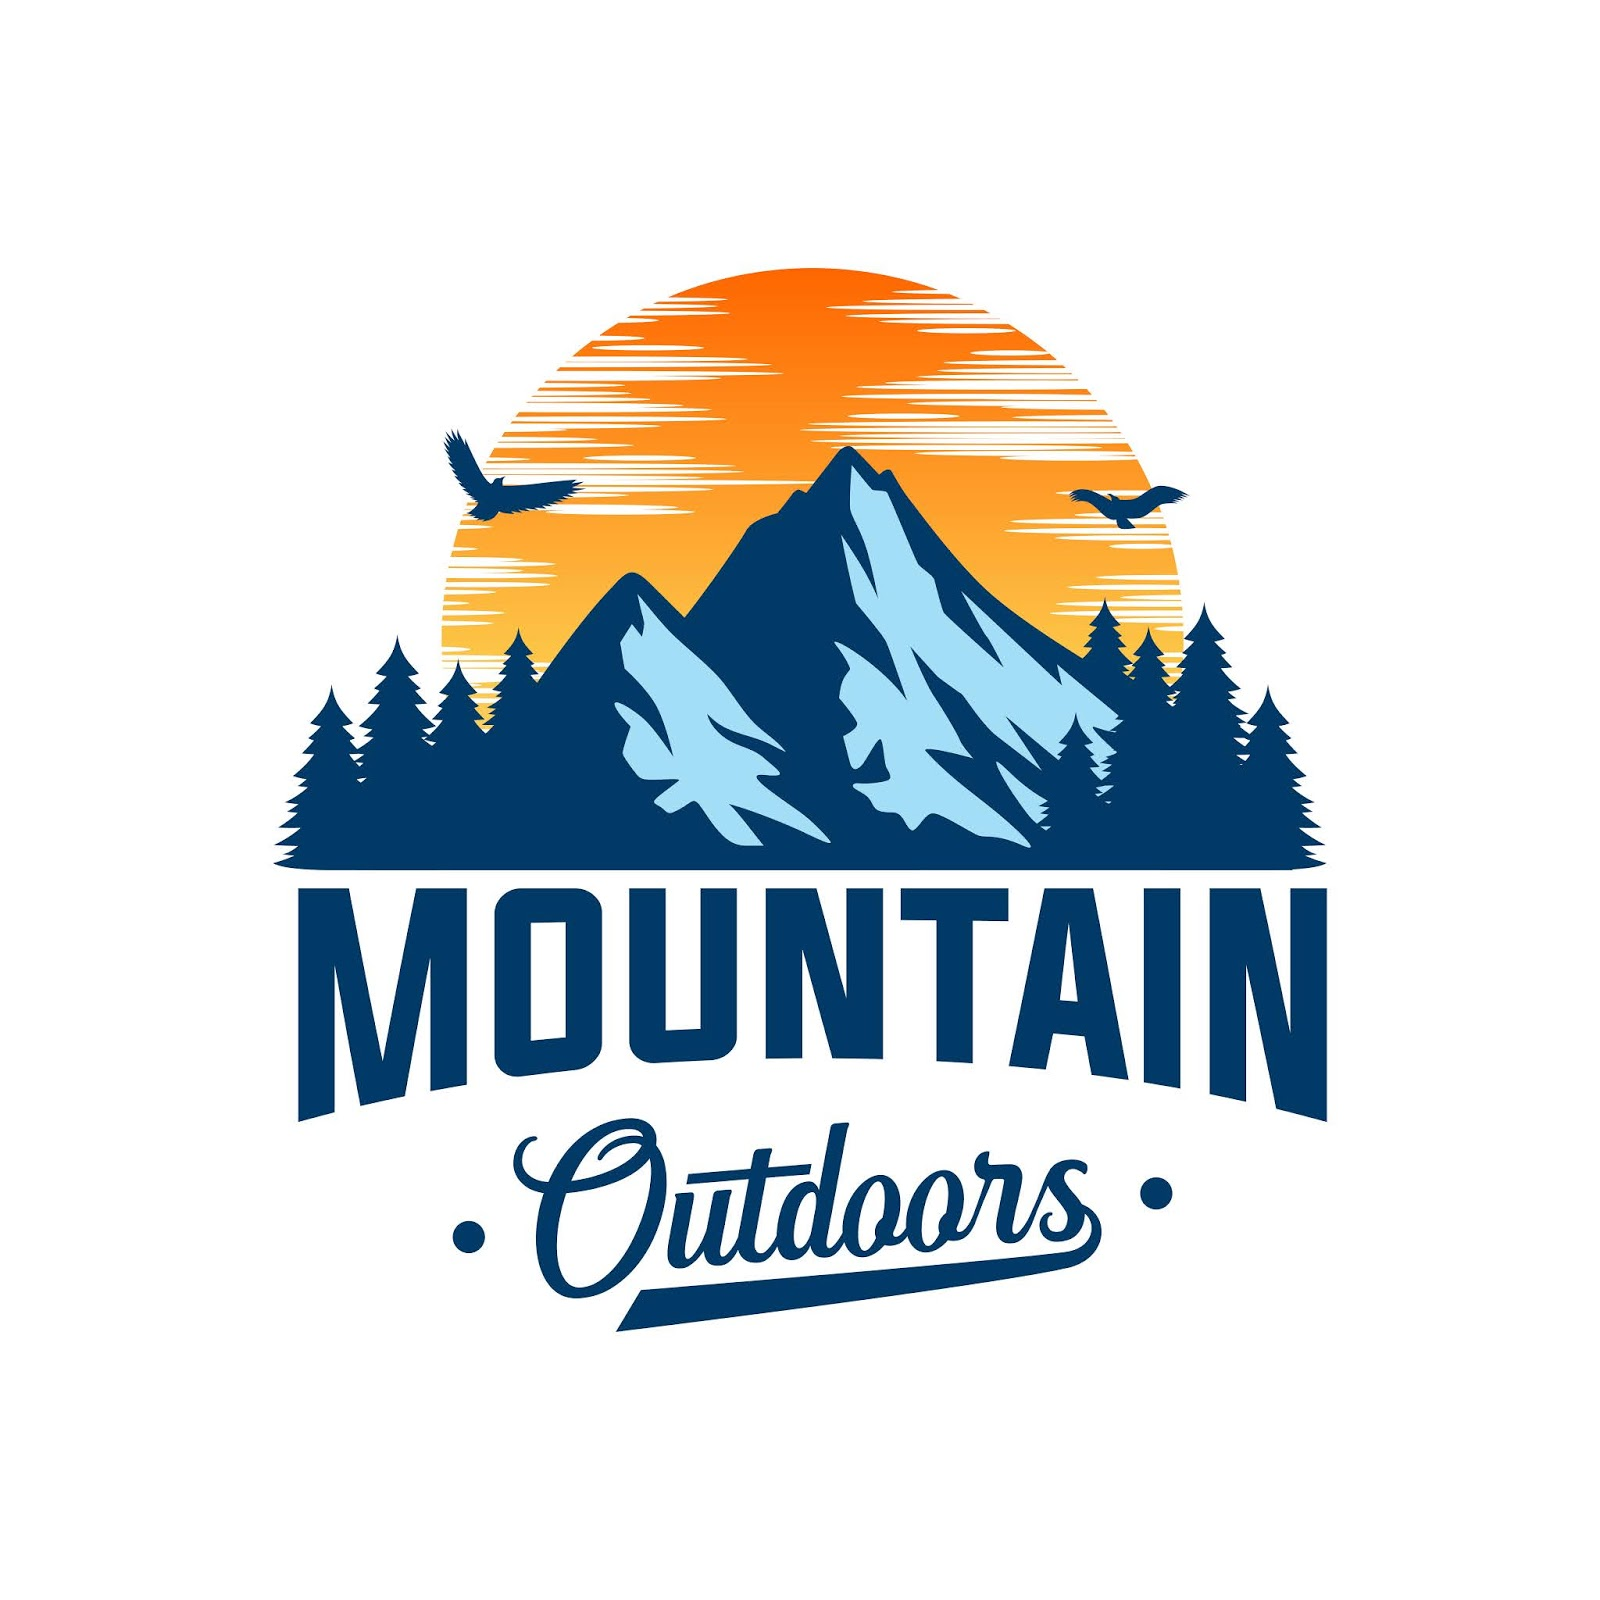 Mountain Logo Adventure Style Free Download Vector CDR, AI, EPS and PNG Formats